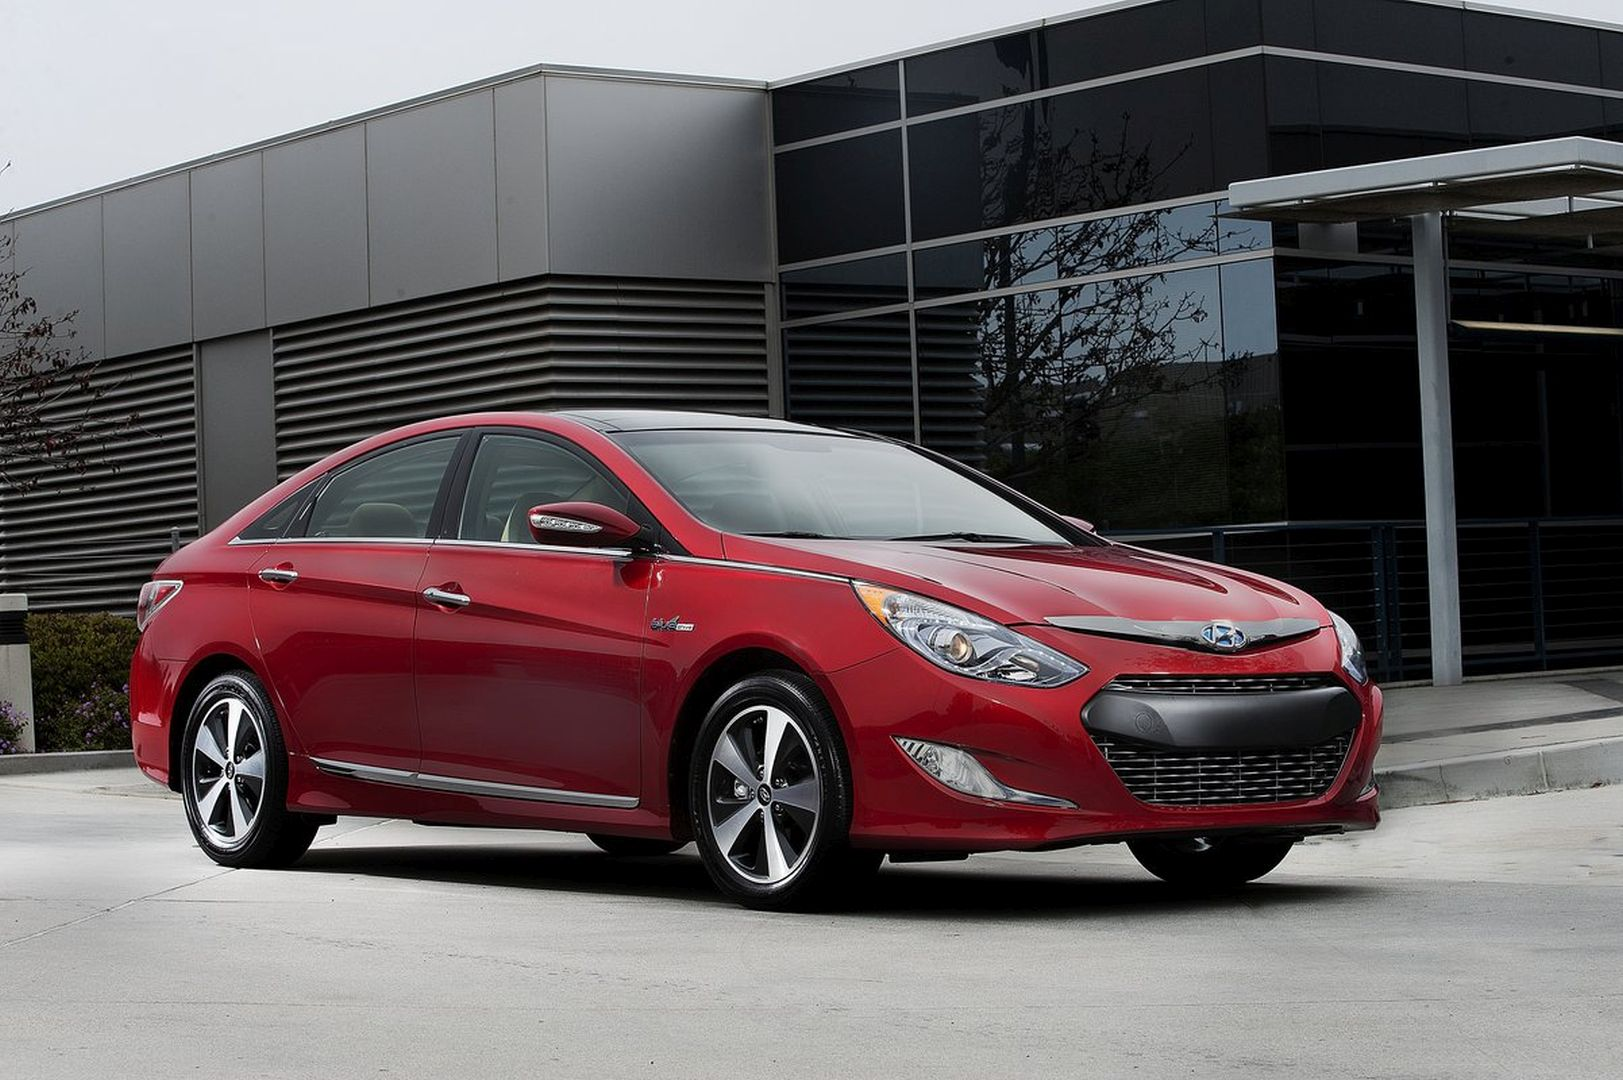 hyundai sonata hybrid specs 2010 2011 2012 2013 2014 autoevolution. Black Bedroom Furniture Sets. Home Design Ideas